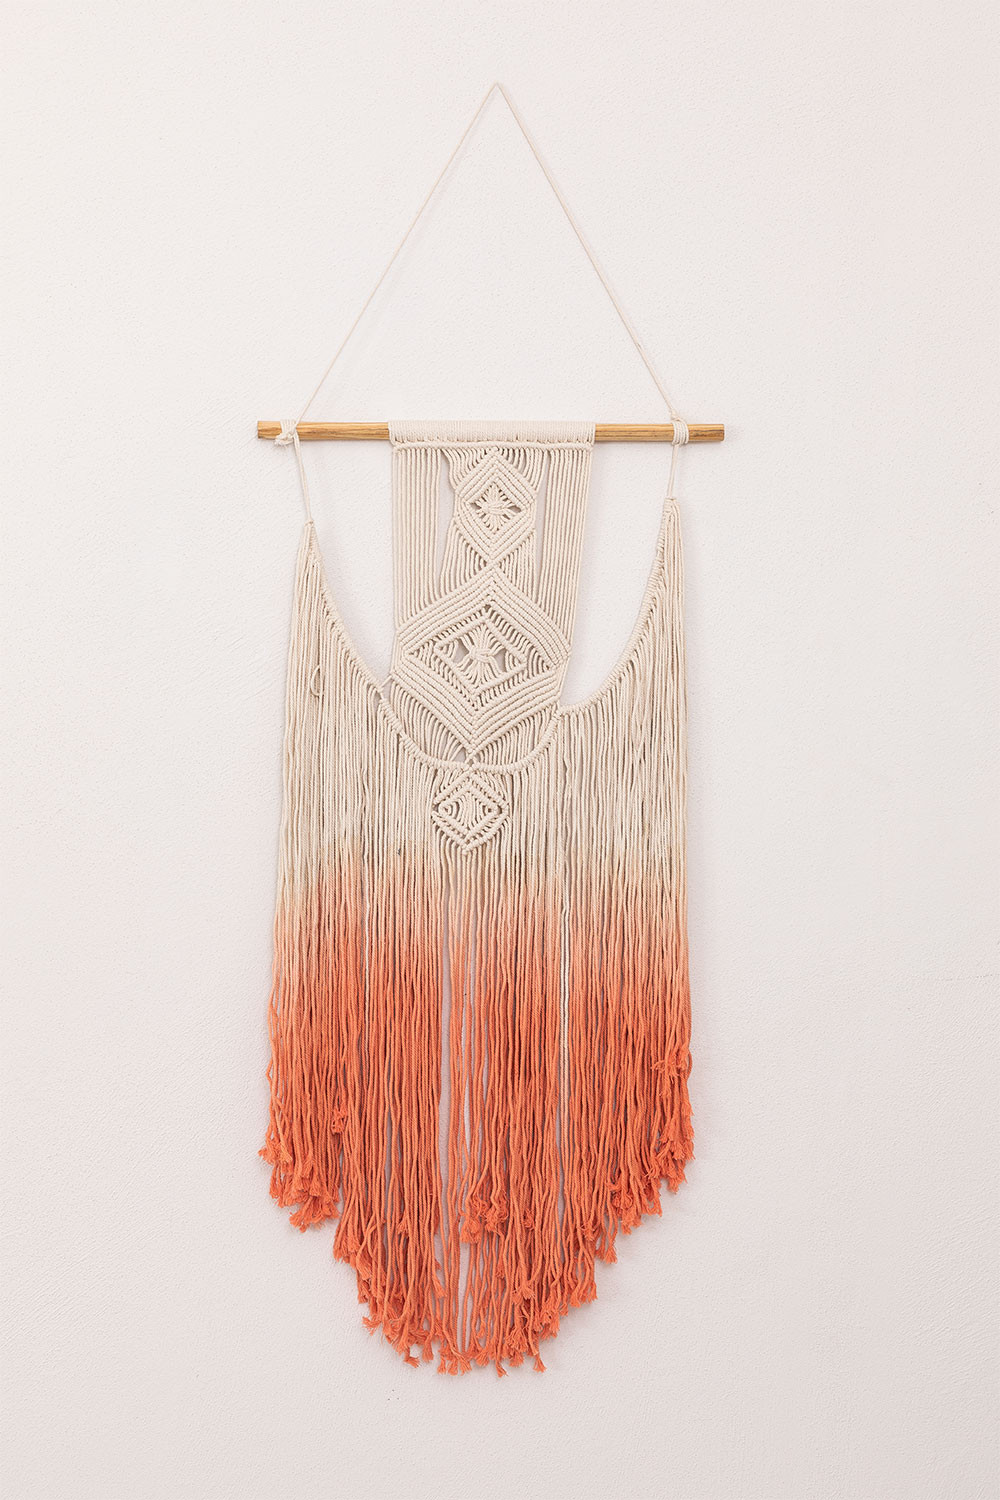 Arqui Hanging Tapestry , gallery image 1